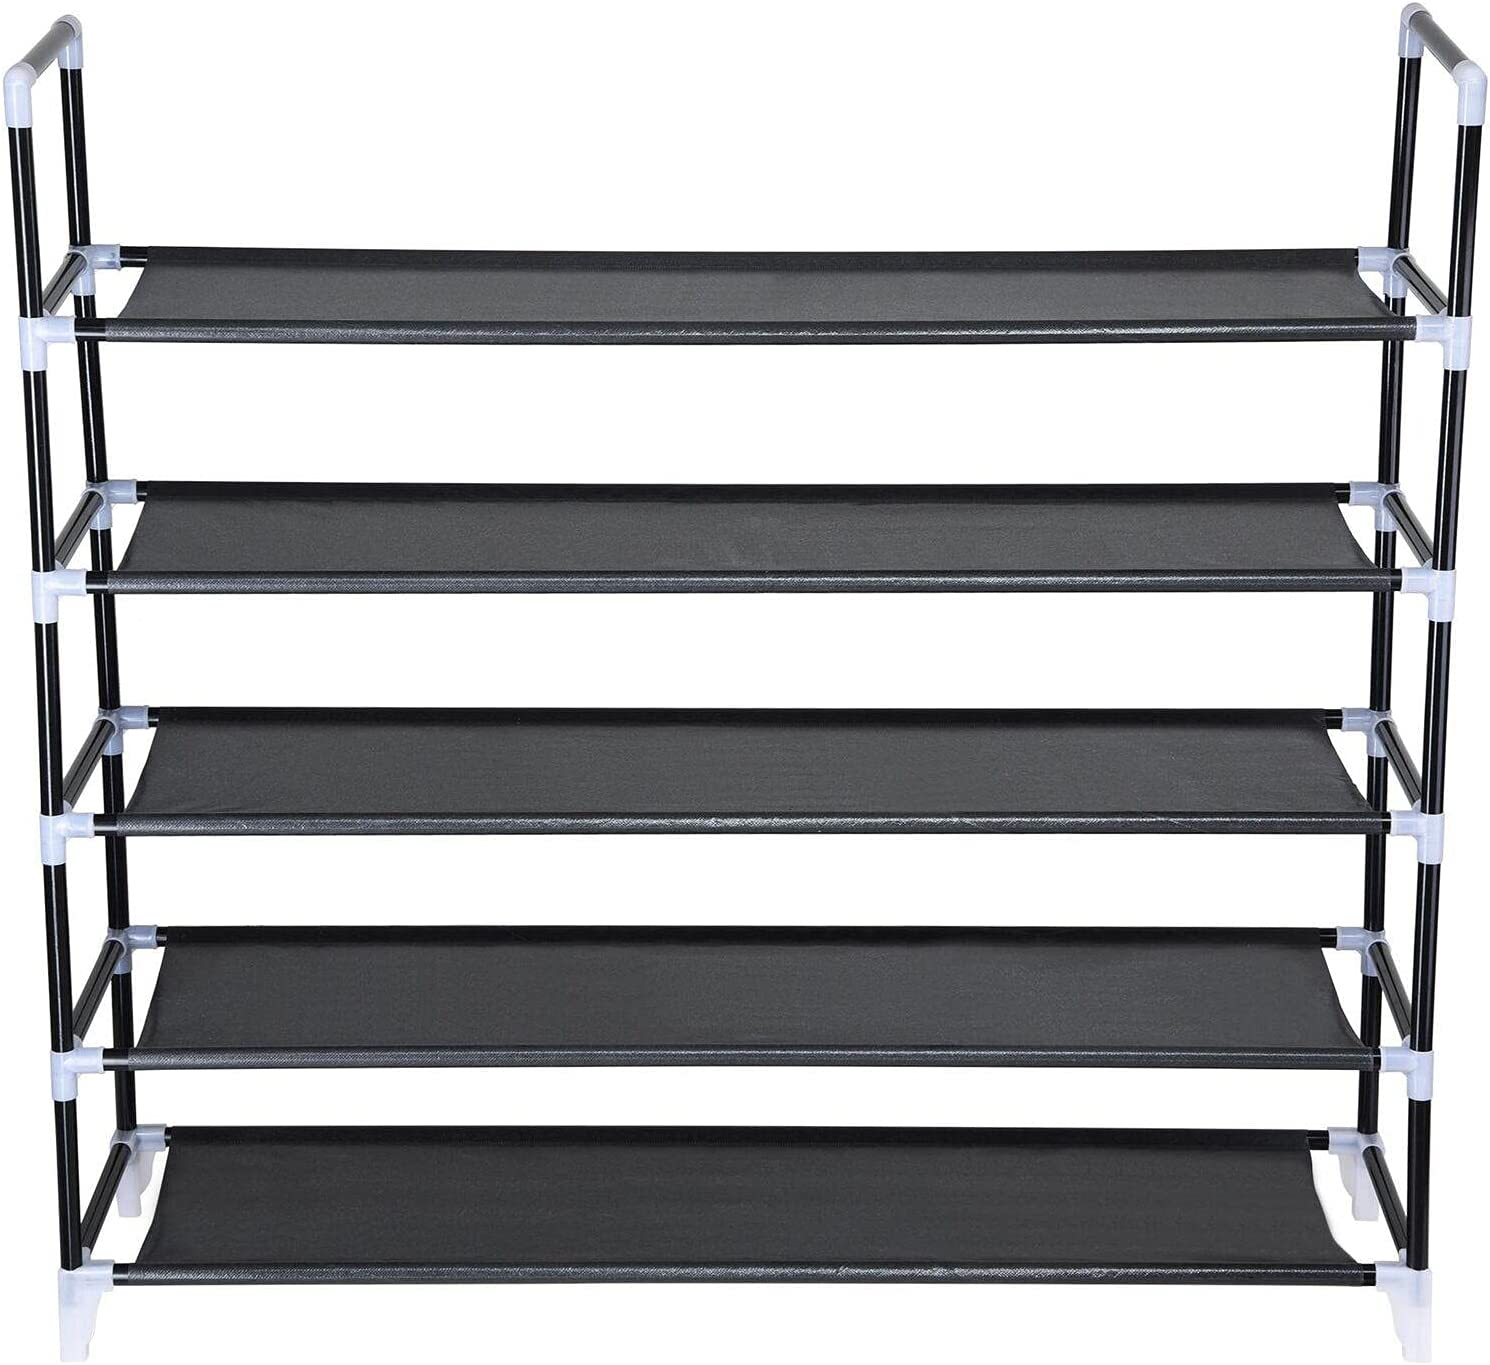 25 Time sale Pair 5-Tier Shoe Rack Stand Ranking TOP1 Spave Save Storage Shel Organizer